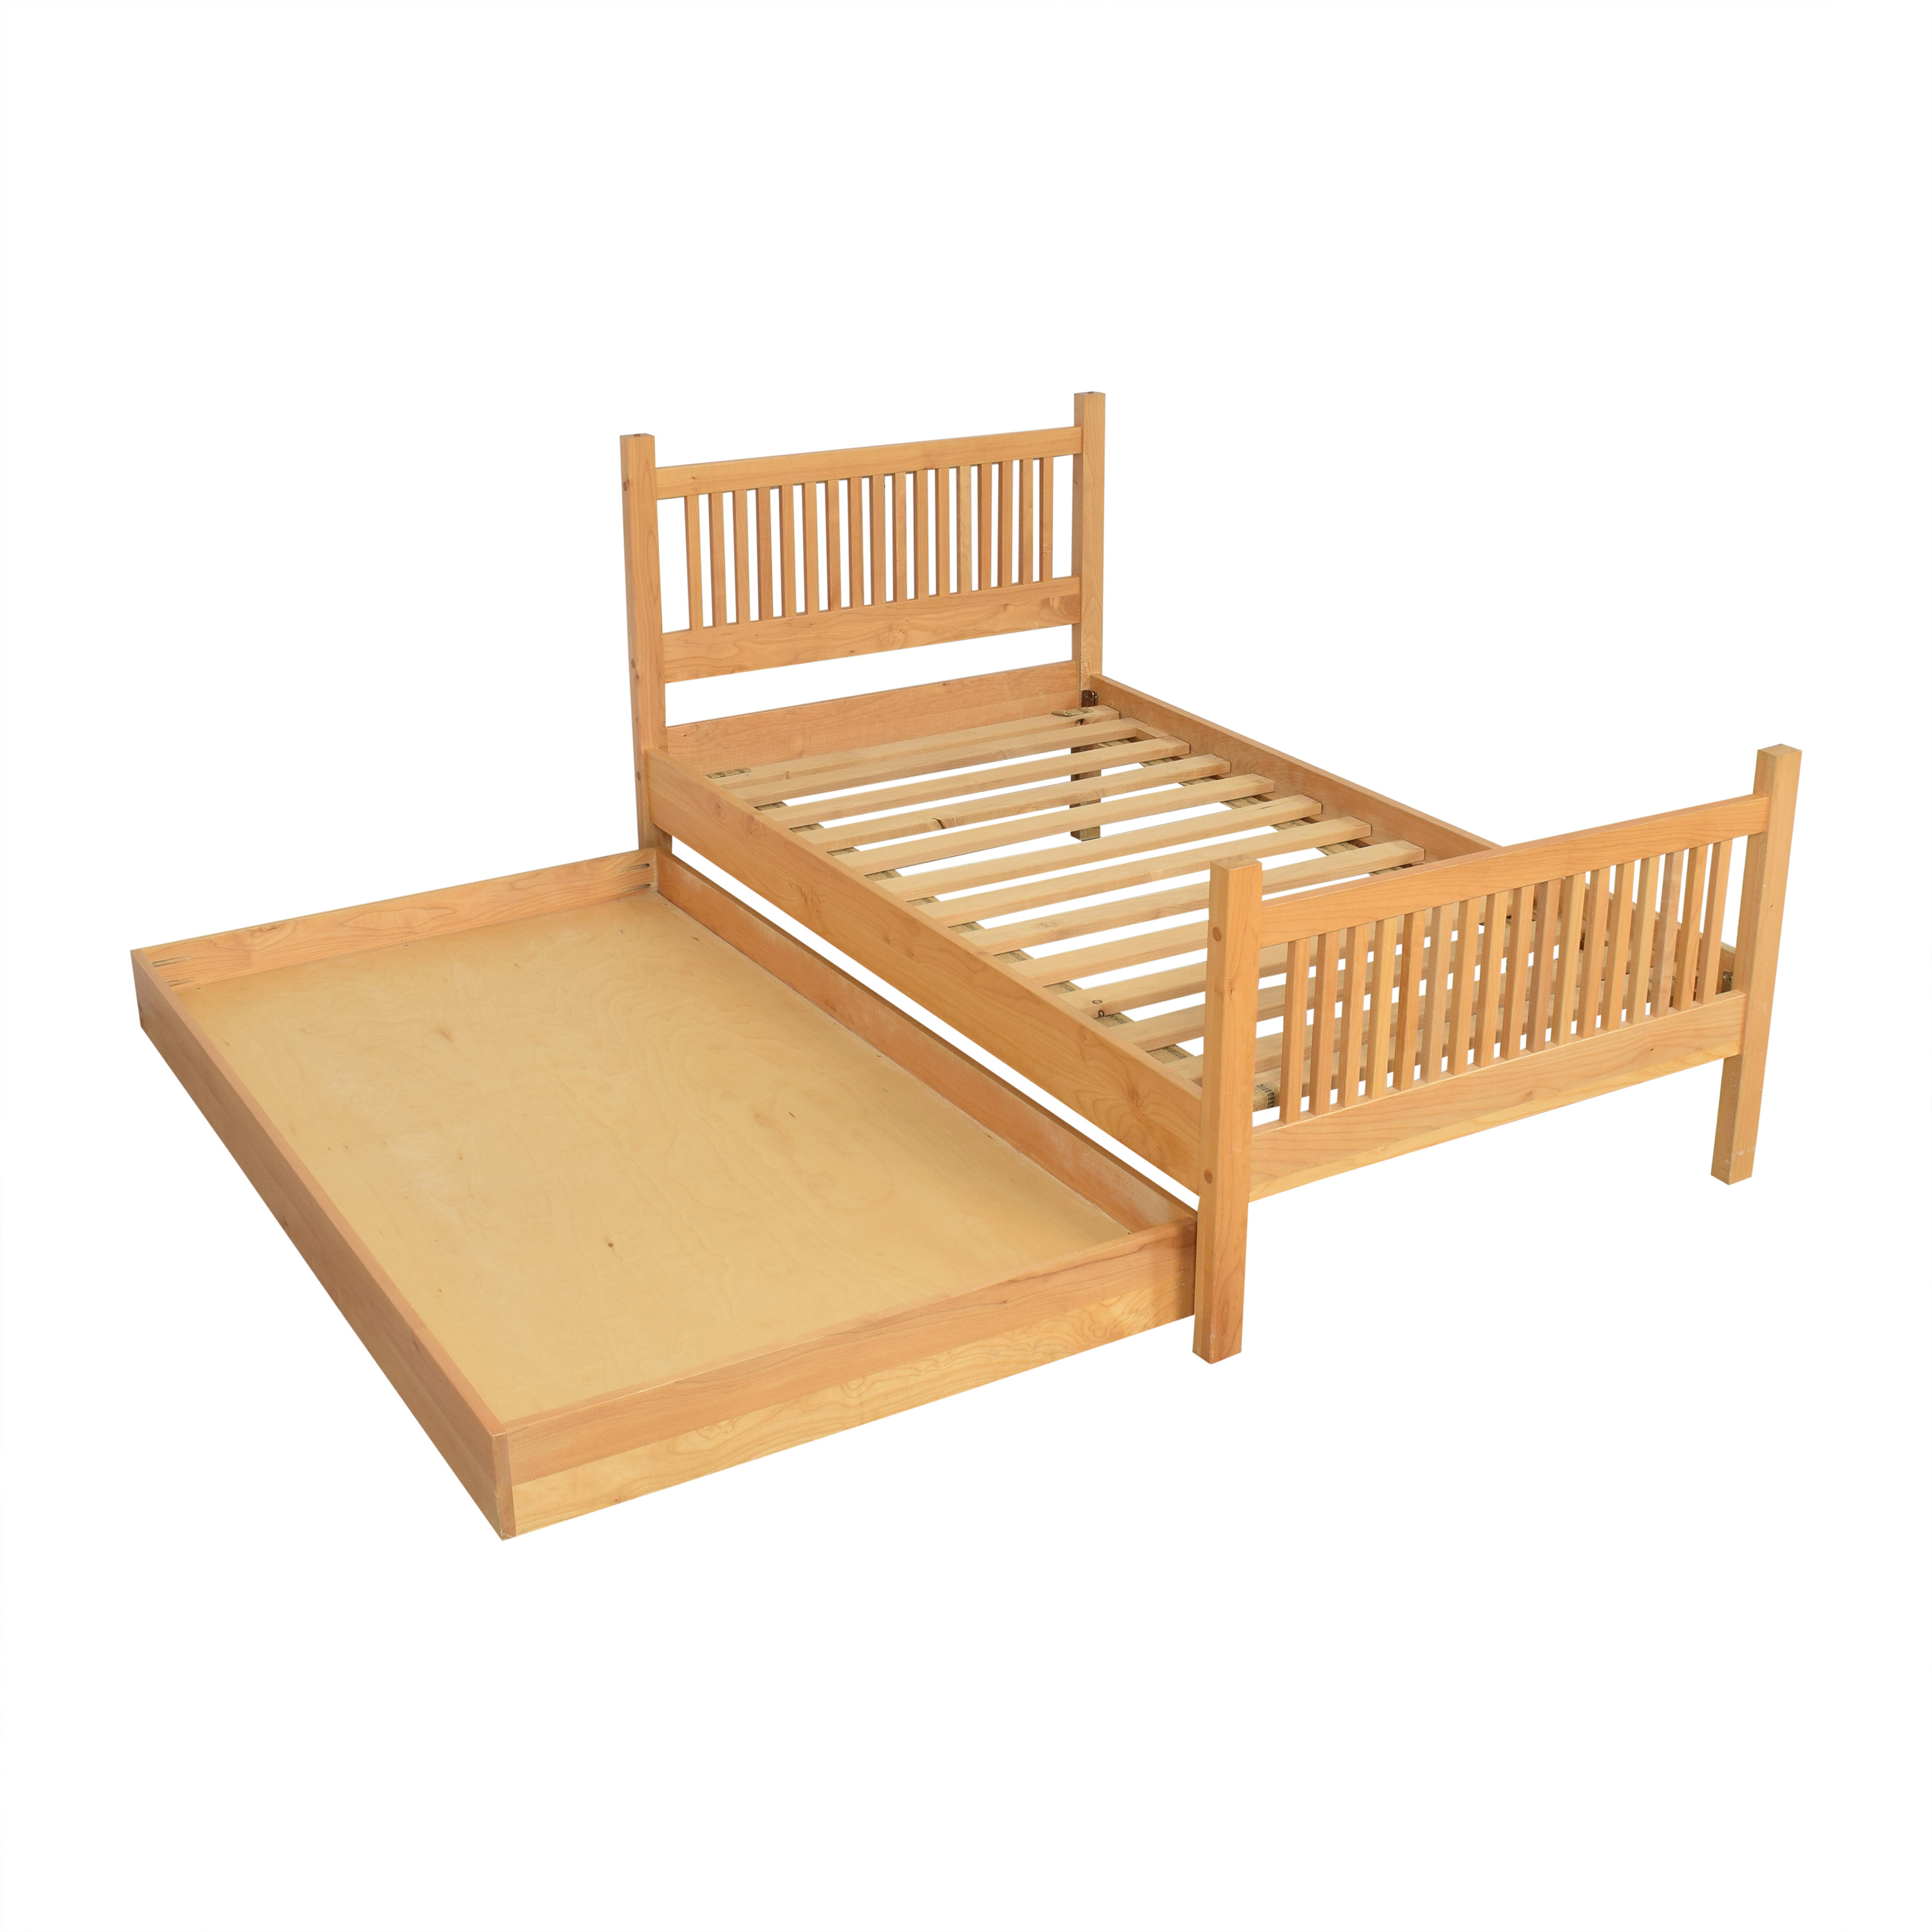 Room & Board Room & Board Riley Twin Bed with Trundle for sale